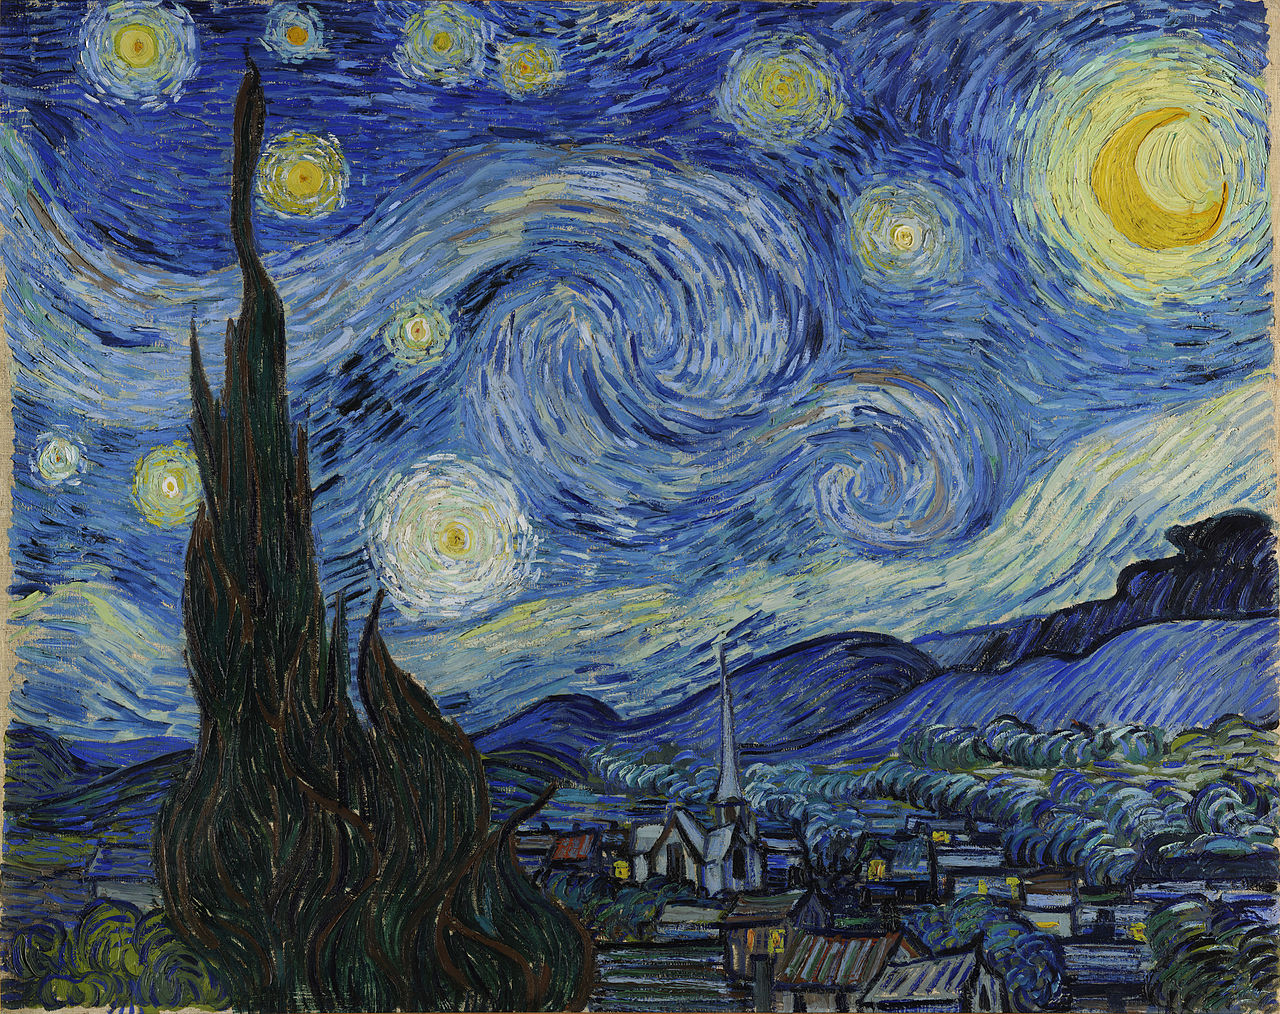 This is an image of starry night.